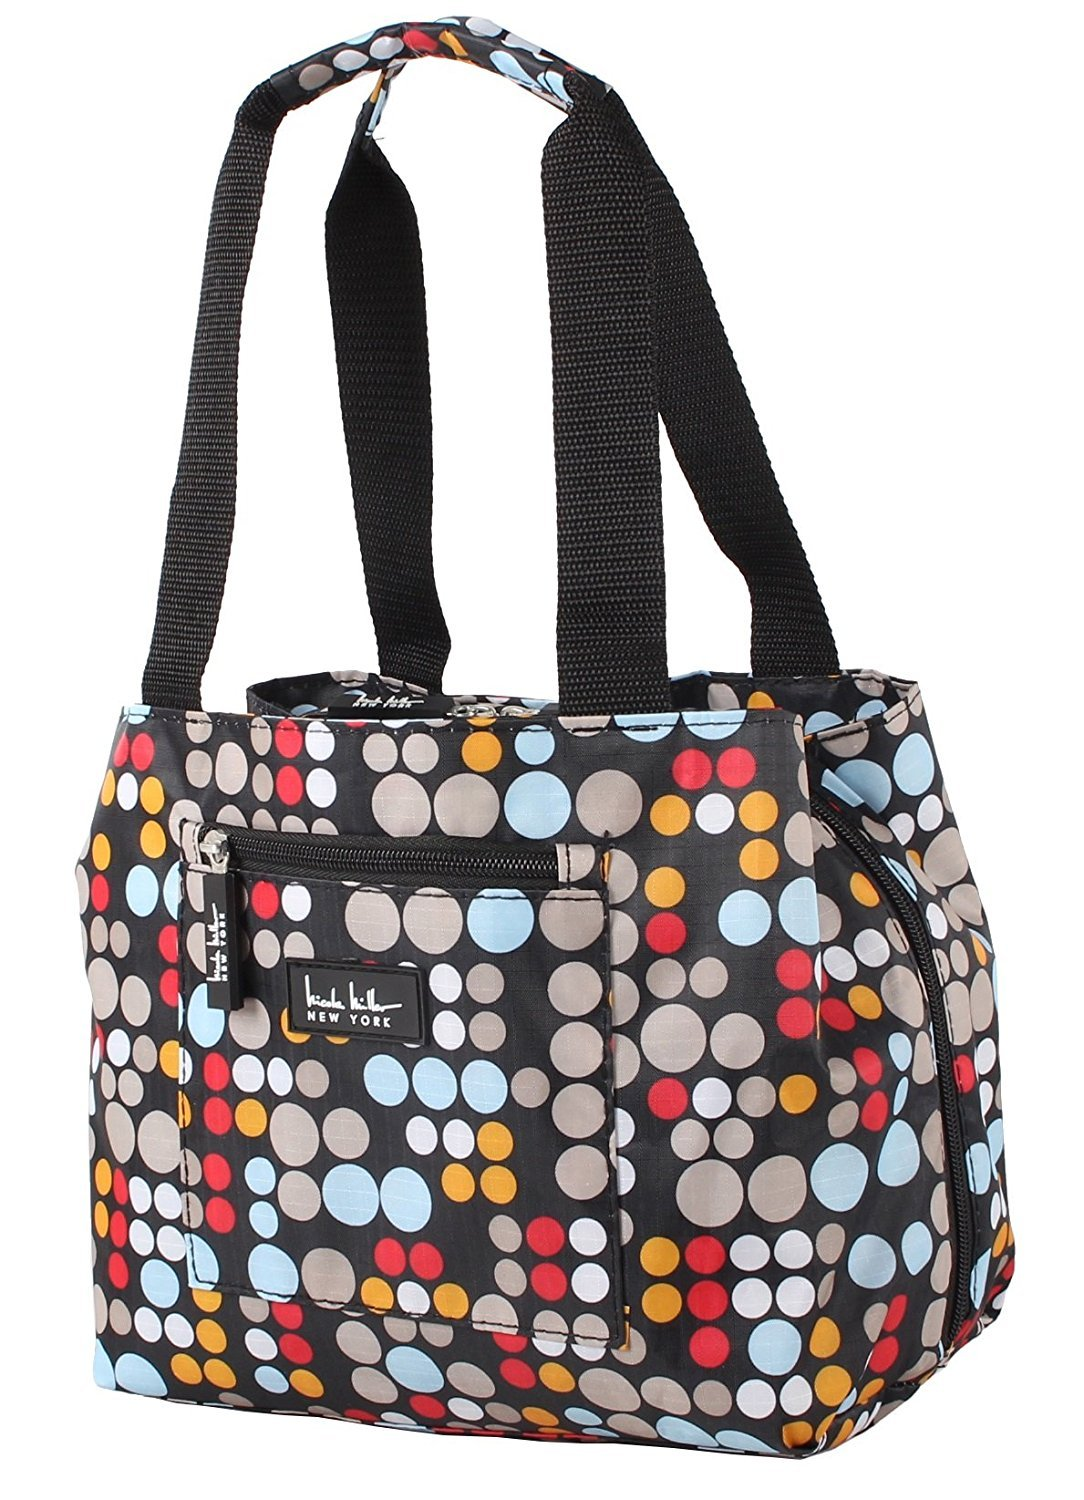 Nicole Miller of New York Insulated Lunch Cooler 11'' Lunch Tote (Bangles Red)